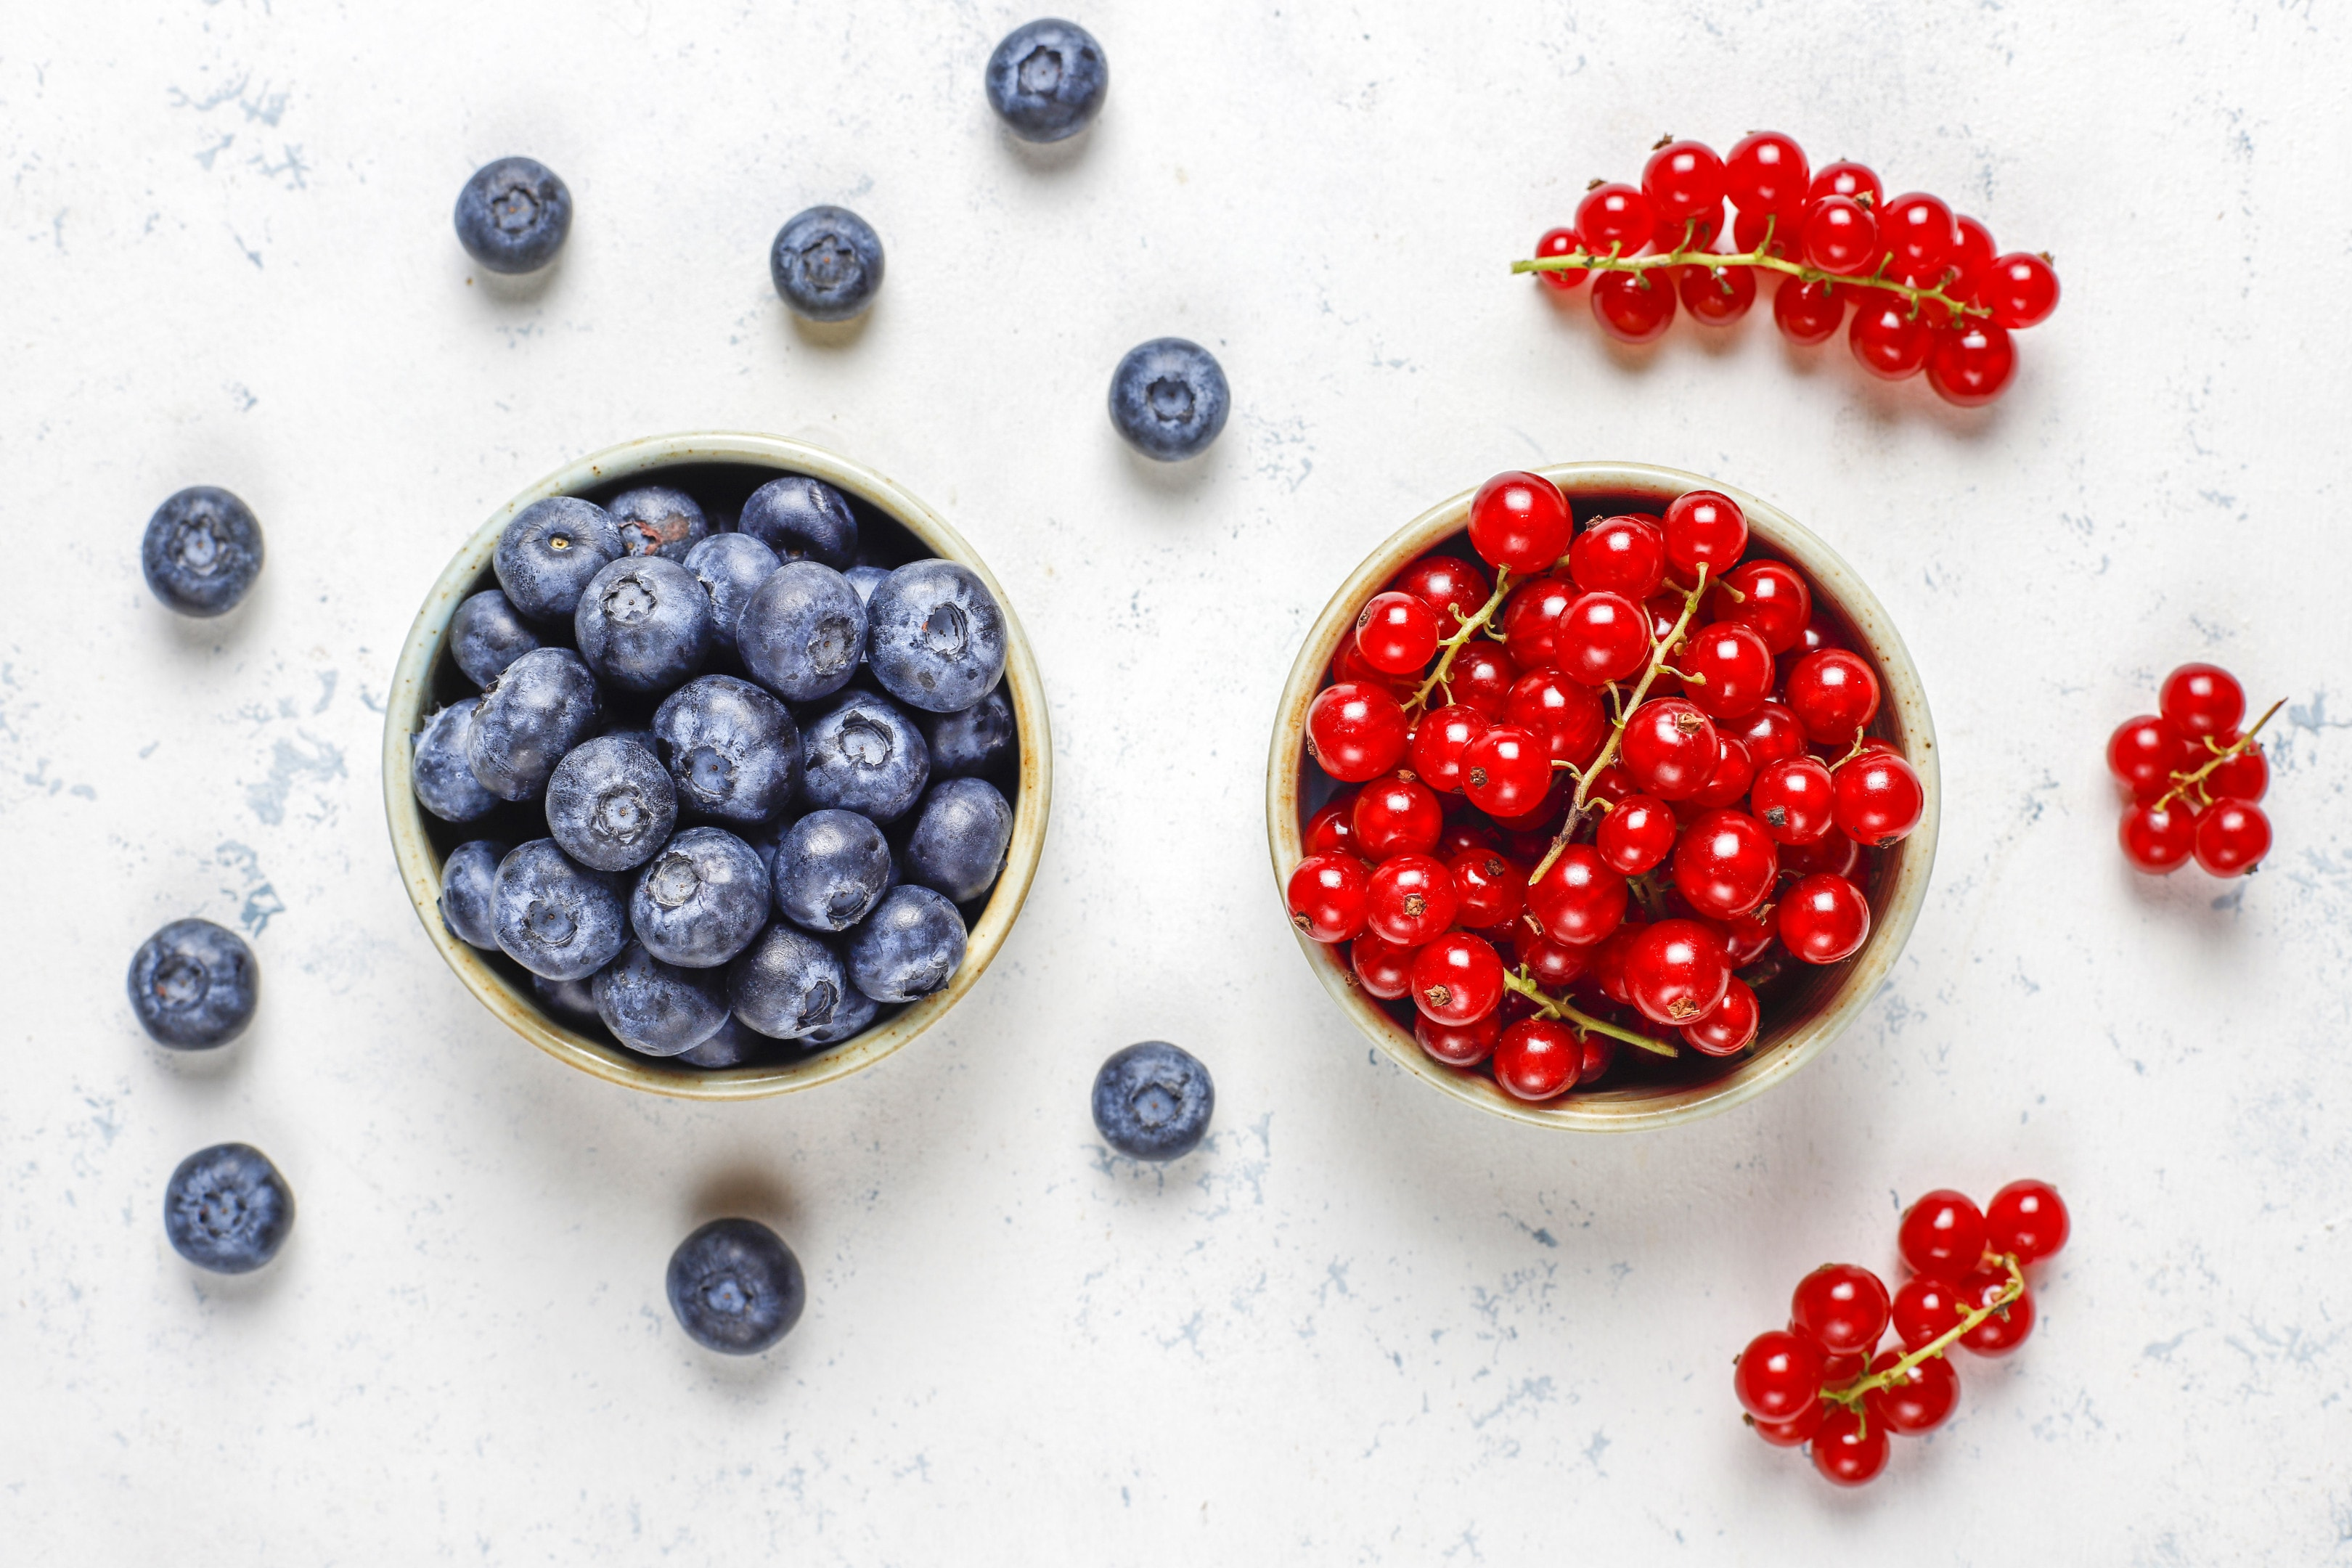 Fresh blueberries and cranberries on white table